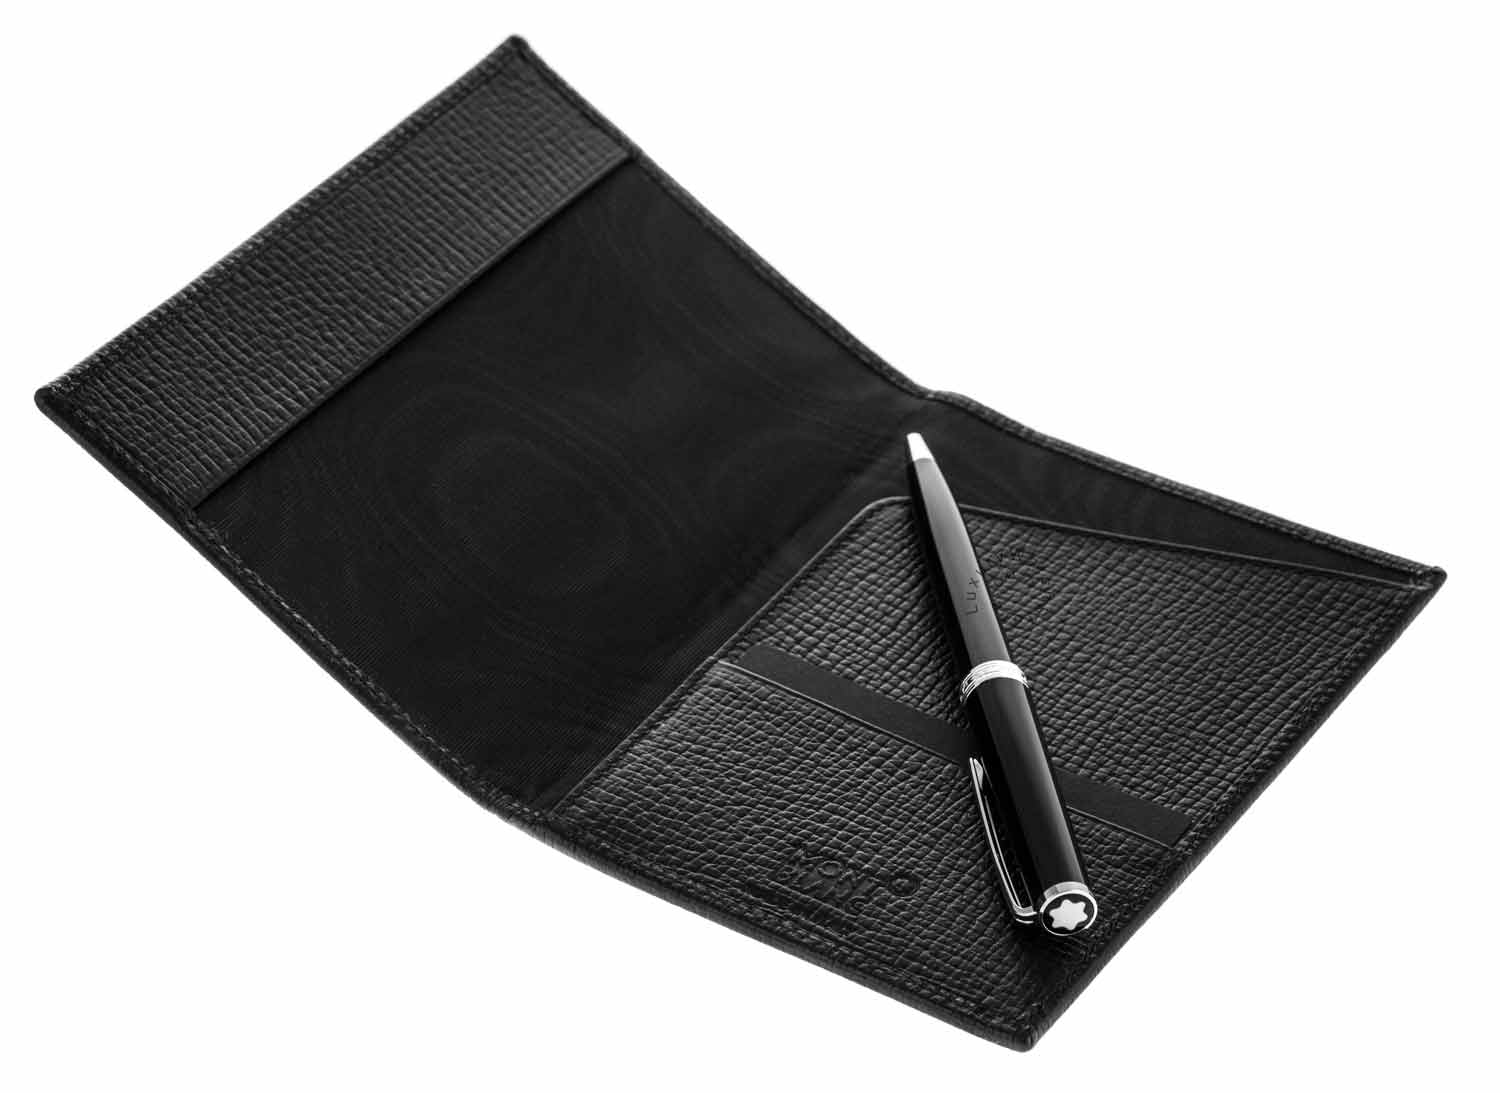 Montblanc PIX Black BP Pen & Meisterstück Passport Holder Set 117089